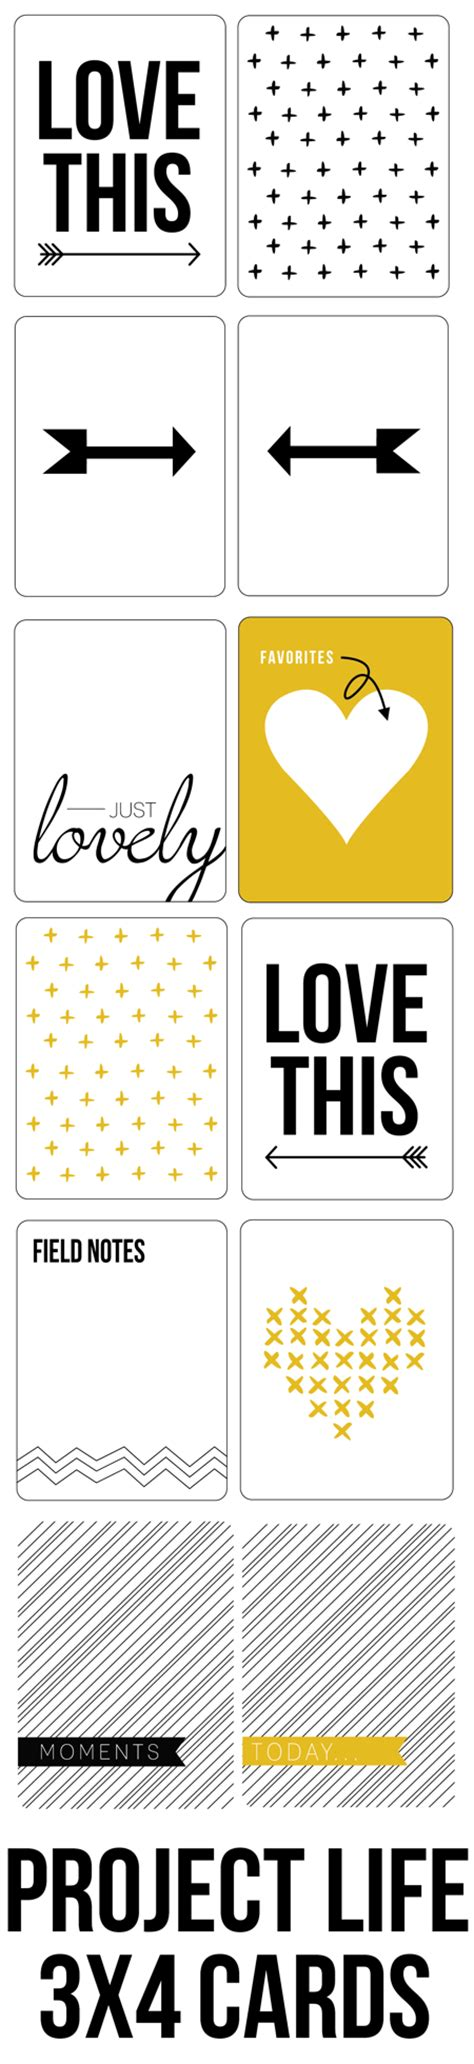 3x4 cards template free yellow black project cards free black